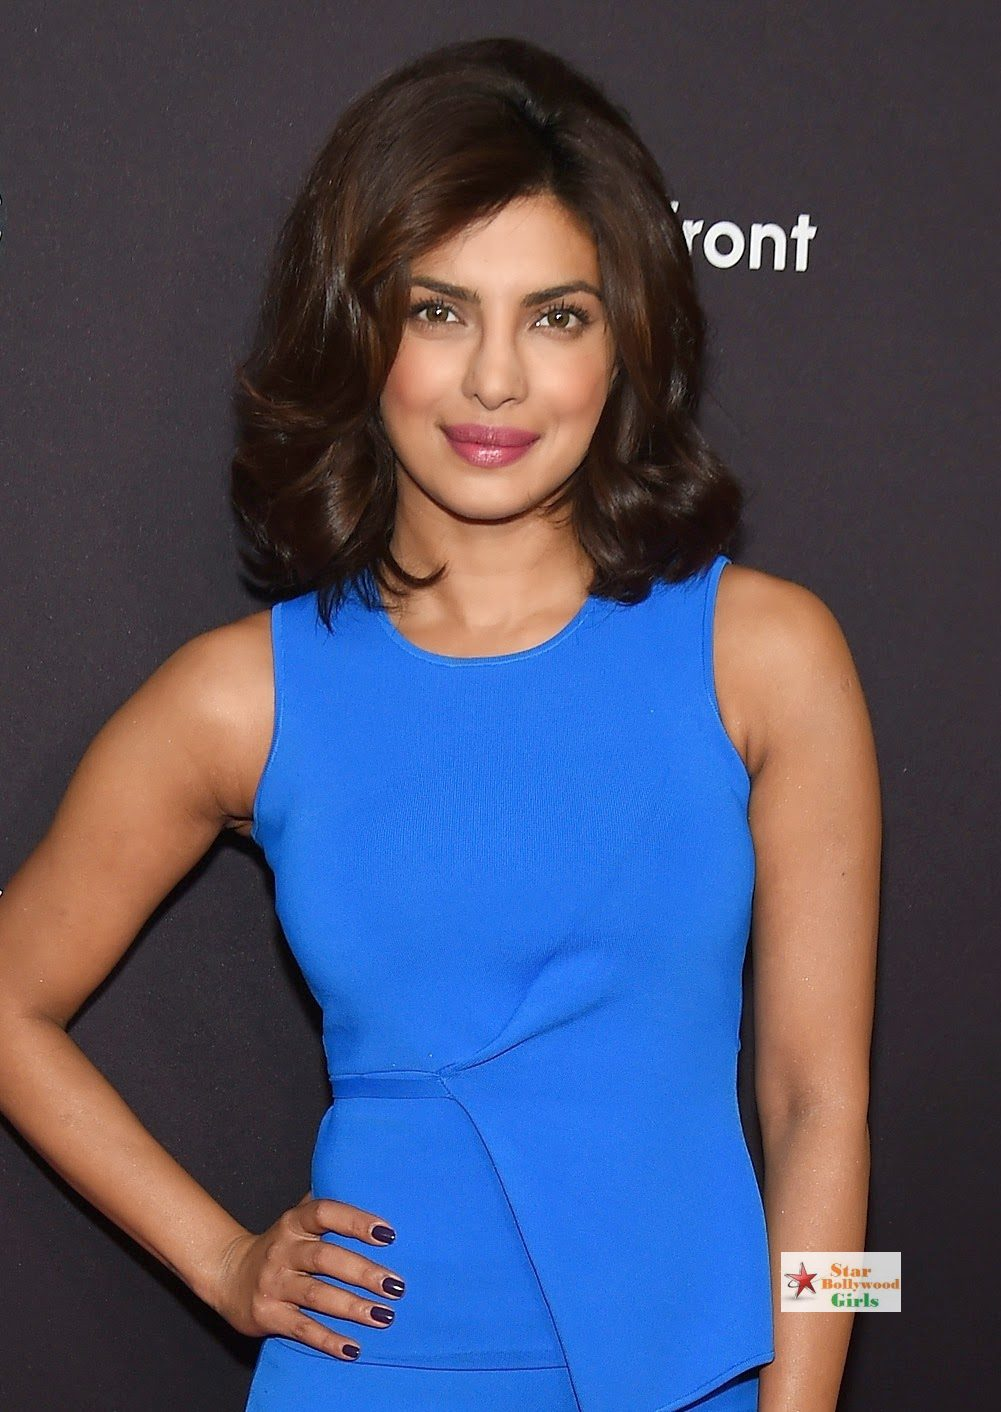 Priyanka Chopra Looks Sexy In Blue Figure Hugging Dress As She Attends The 2015 ABC Upfront At Avery Fisher Hall, Lincoln Center In New York3